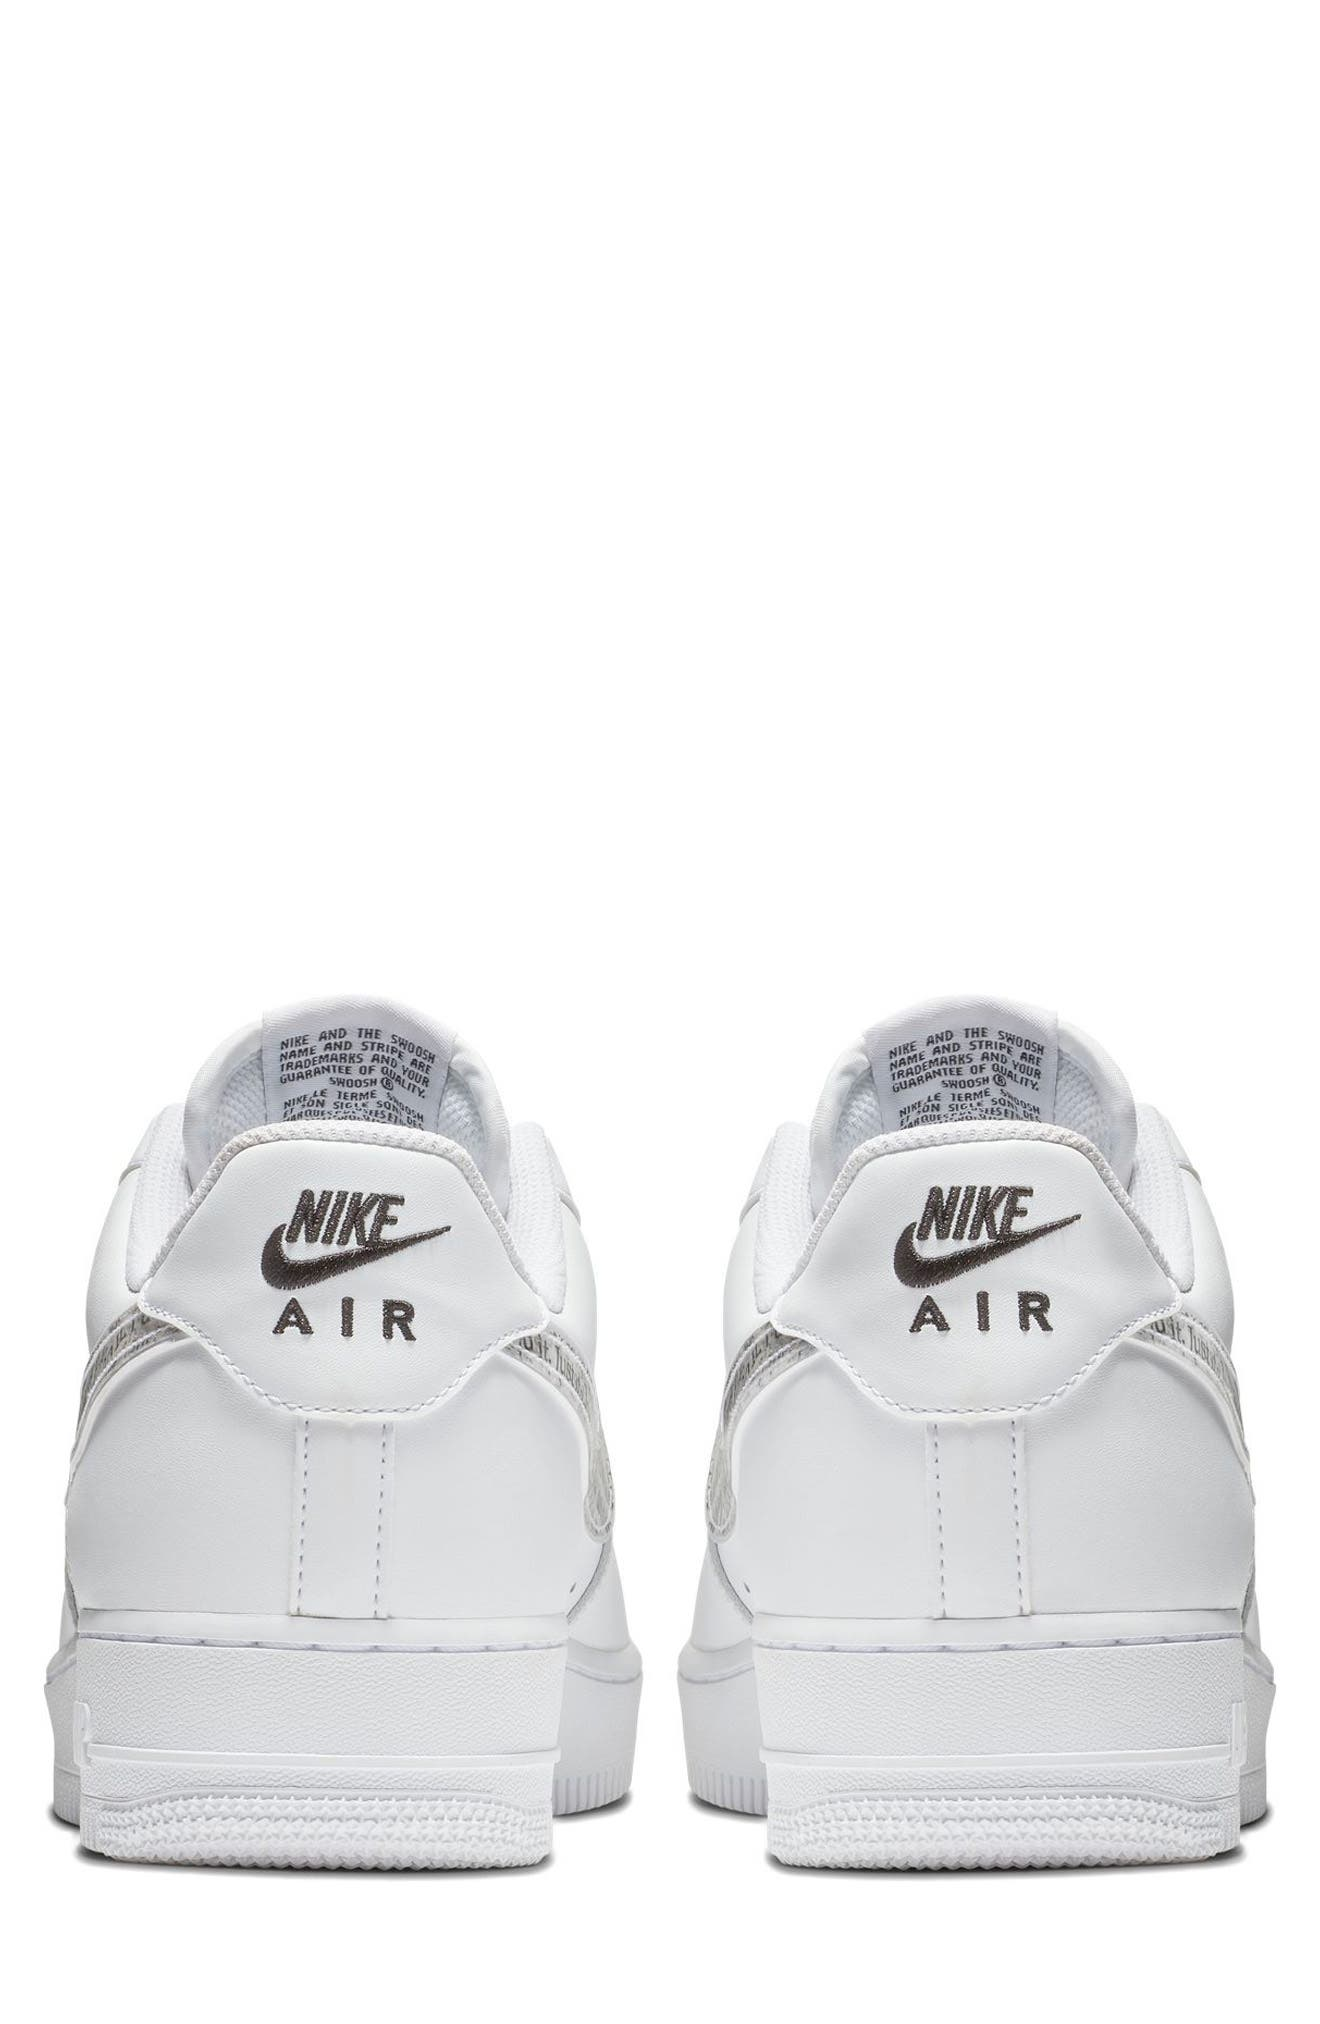 Air Force 1 '07 LV8 Just Do It Sneaker,                             Alternate thumbnail 6, color,                             100